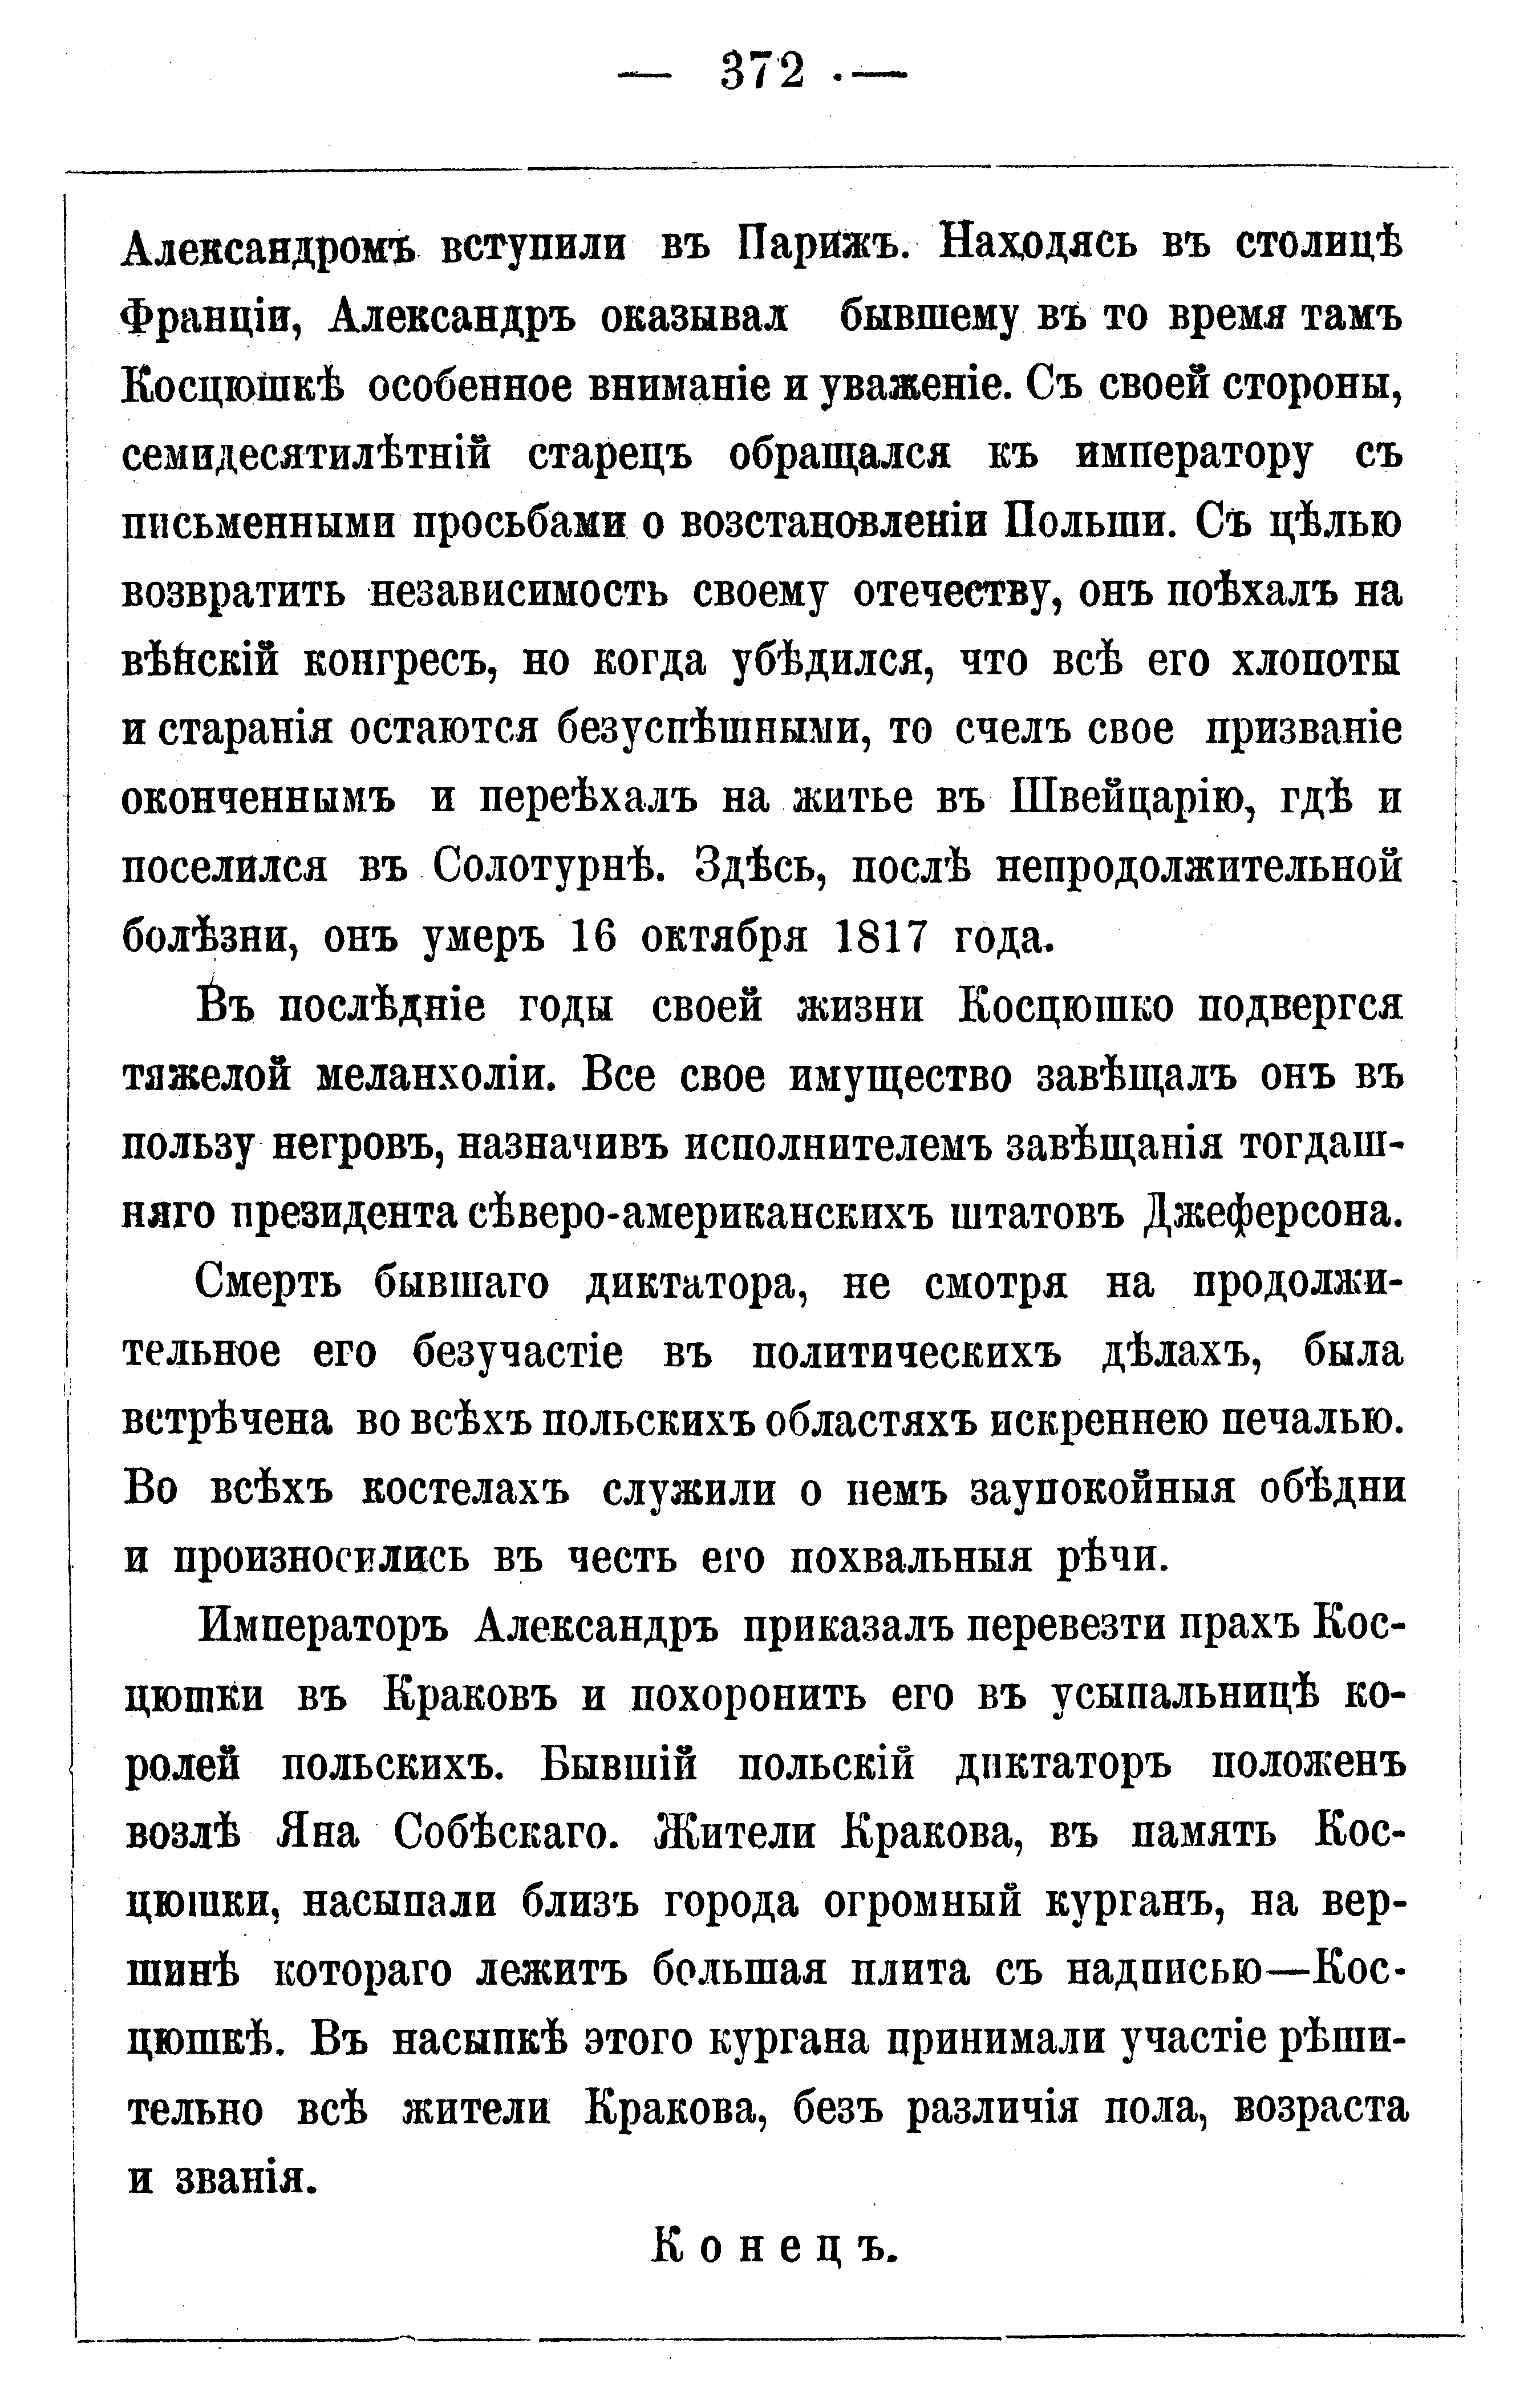 https://upload.wikimedia.org/wikipedia/commons/f/fb/Evgeny_Petrovich_Karnovich_-_Essays_and_Short_Stories_from_Old_Way_of_Life_of_Poland-372.png